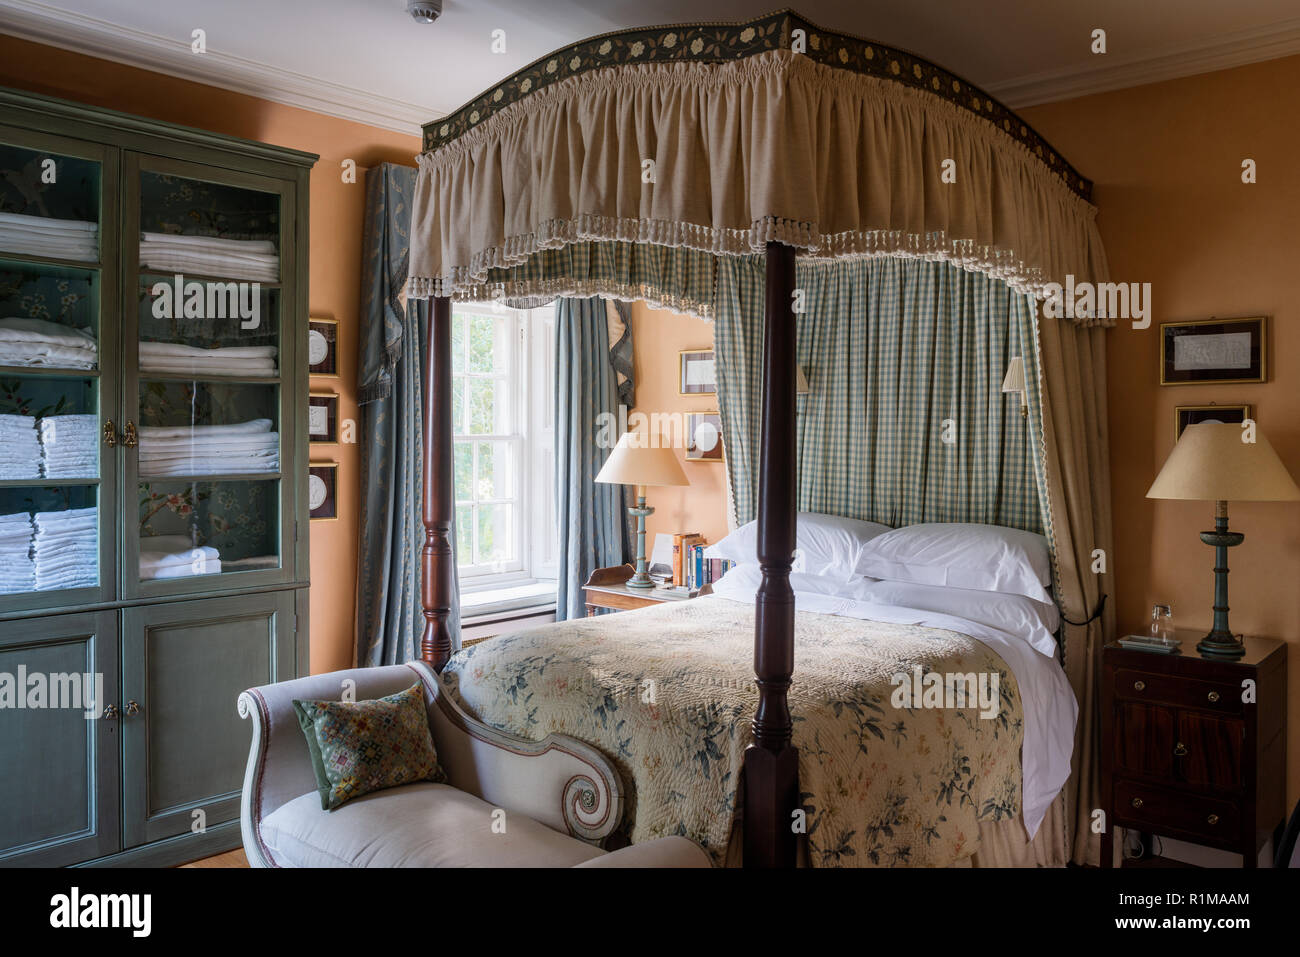 Four Bedrooms Photos Four Bedrooms Images Alamy